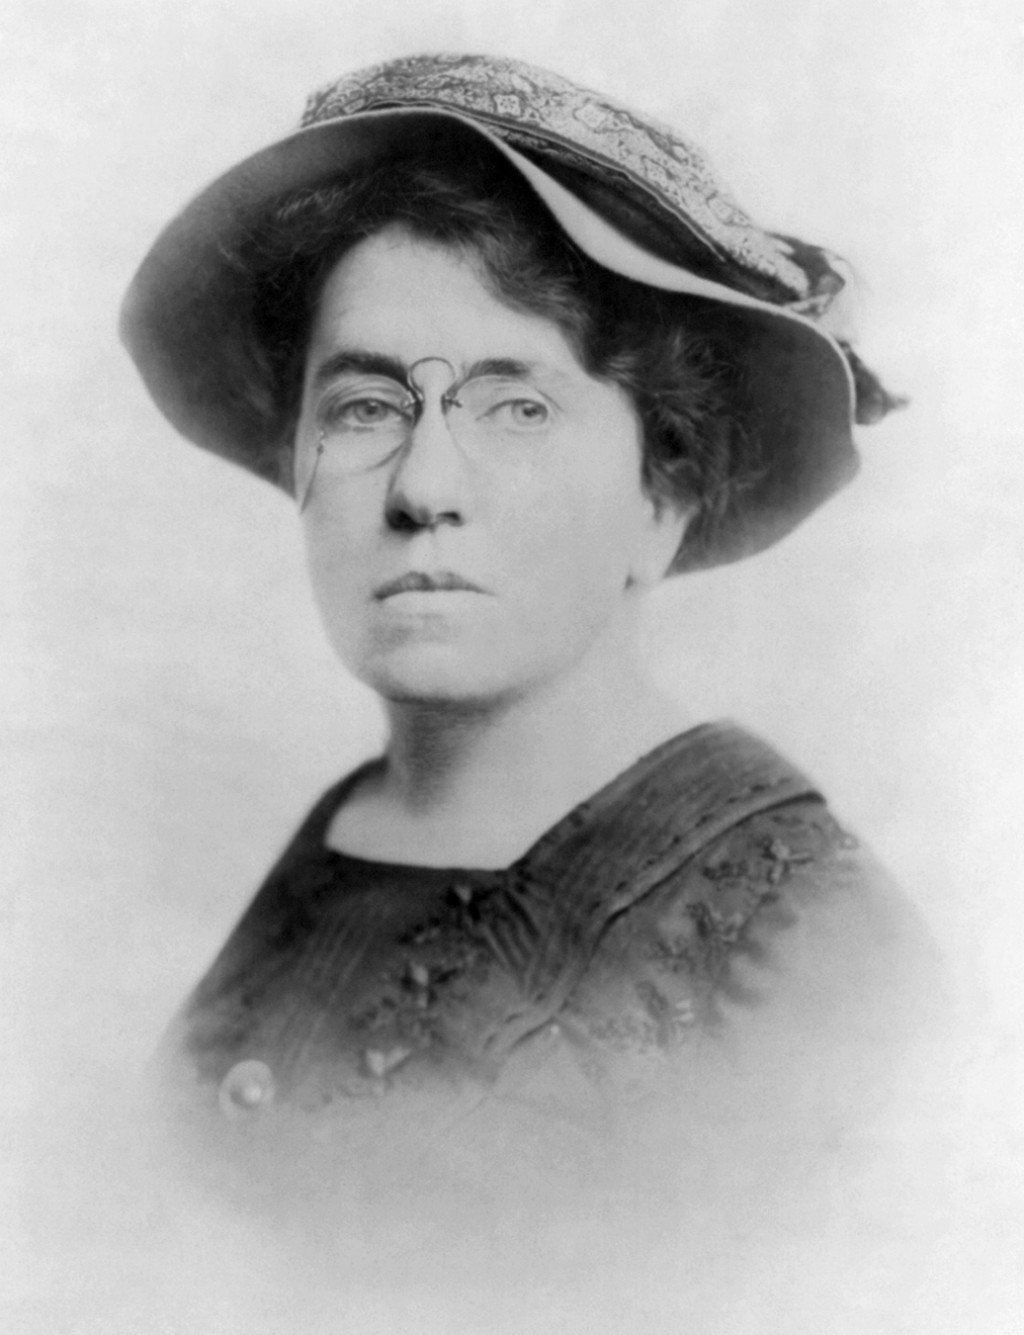 006 Emma Goldman 2 Anarchism And Other Essays Essay Incredible Summary Pdf Large